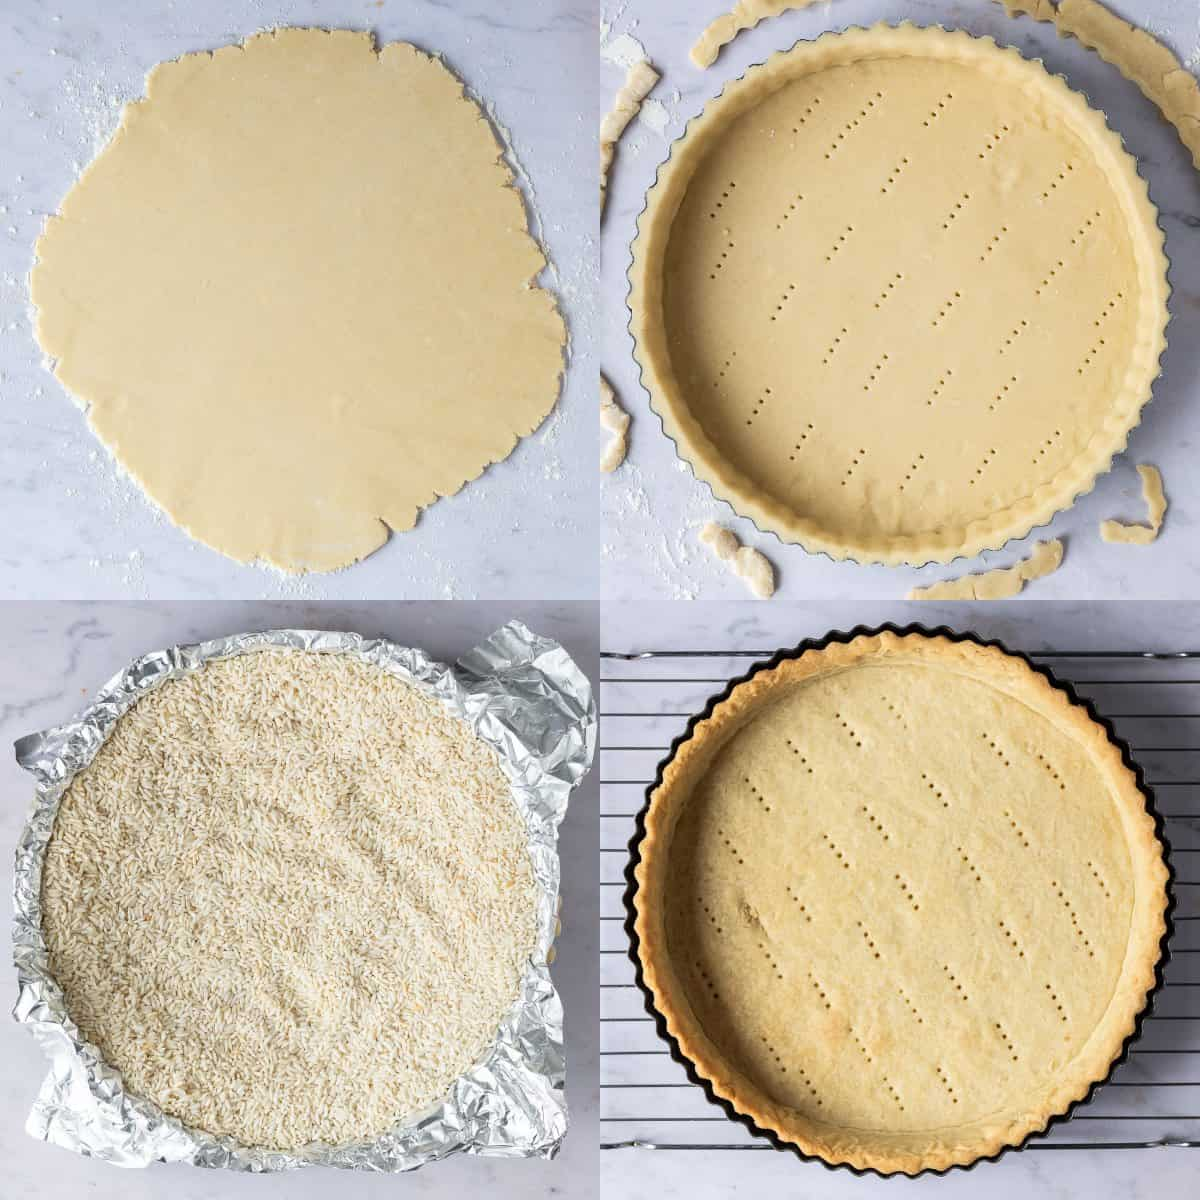 step 2 - blind baking the pastry